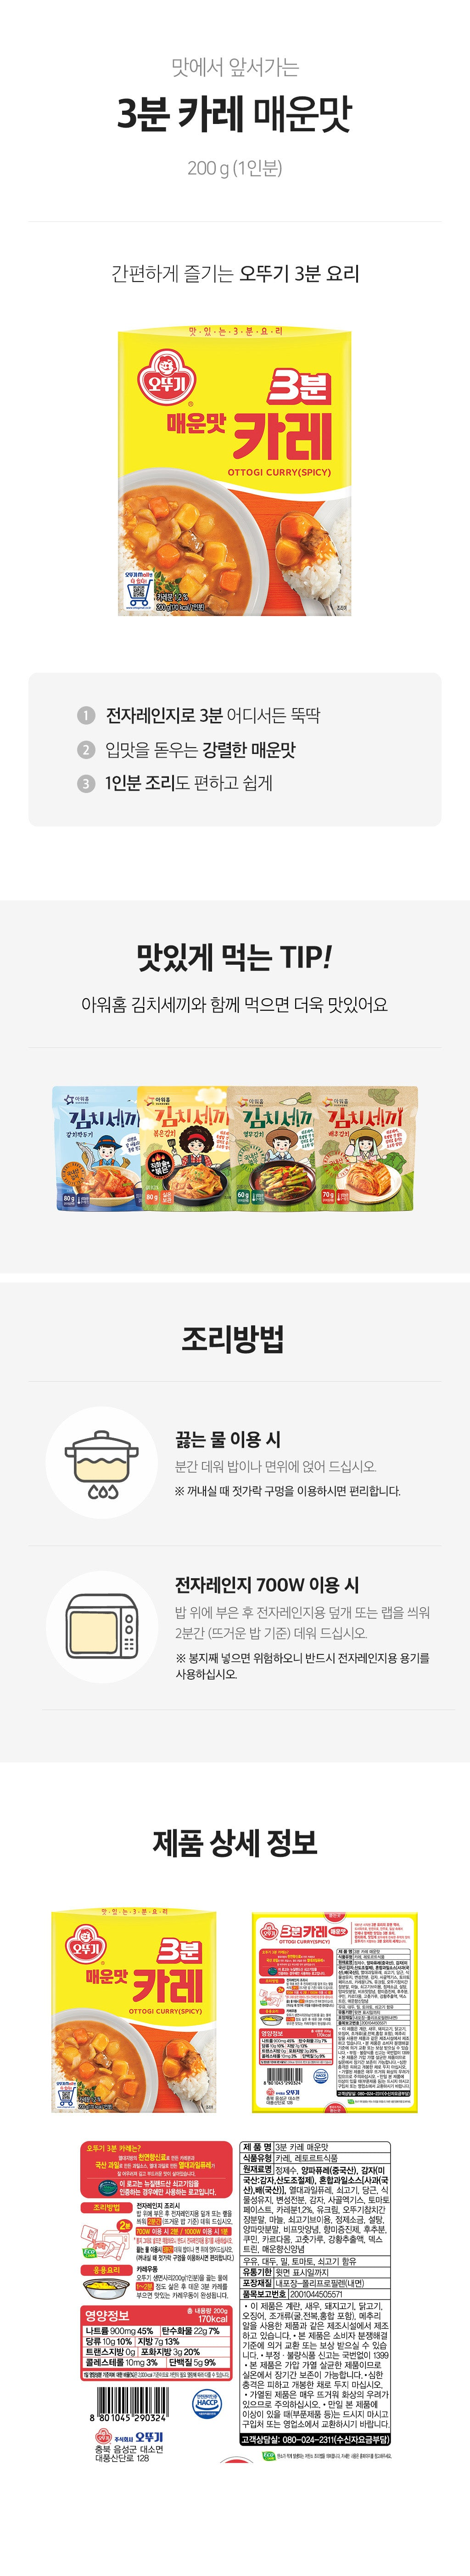 3 MINUTES SAUCE CURRY EPICE COREEN PLAT INSTANTANE 200g